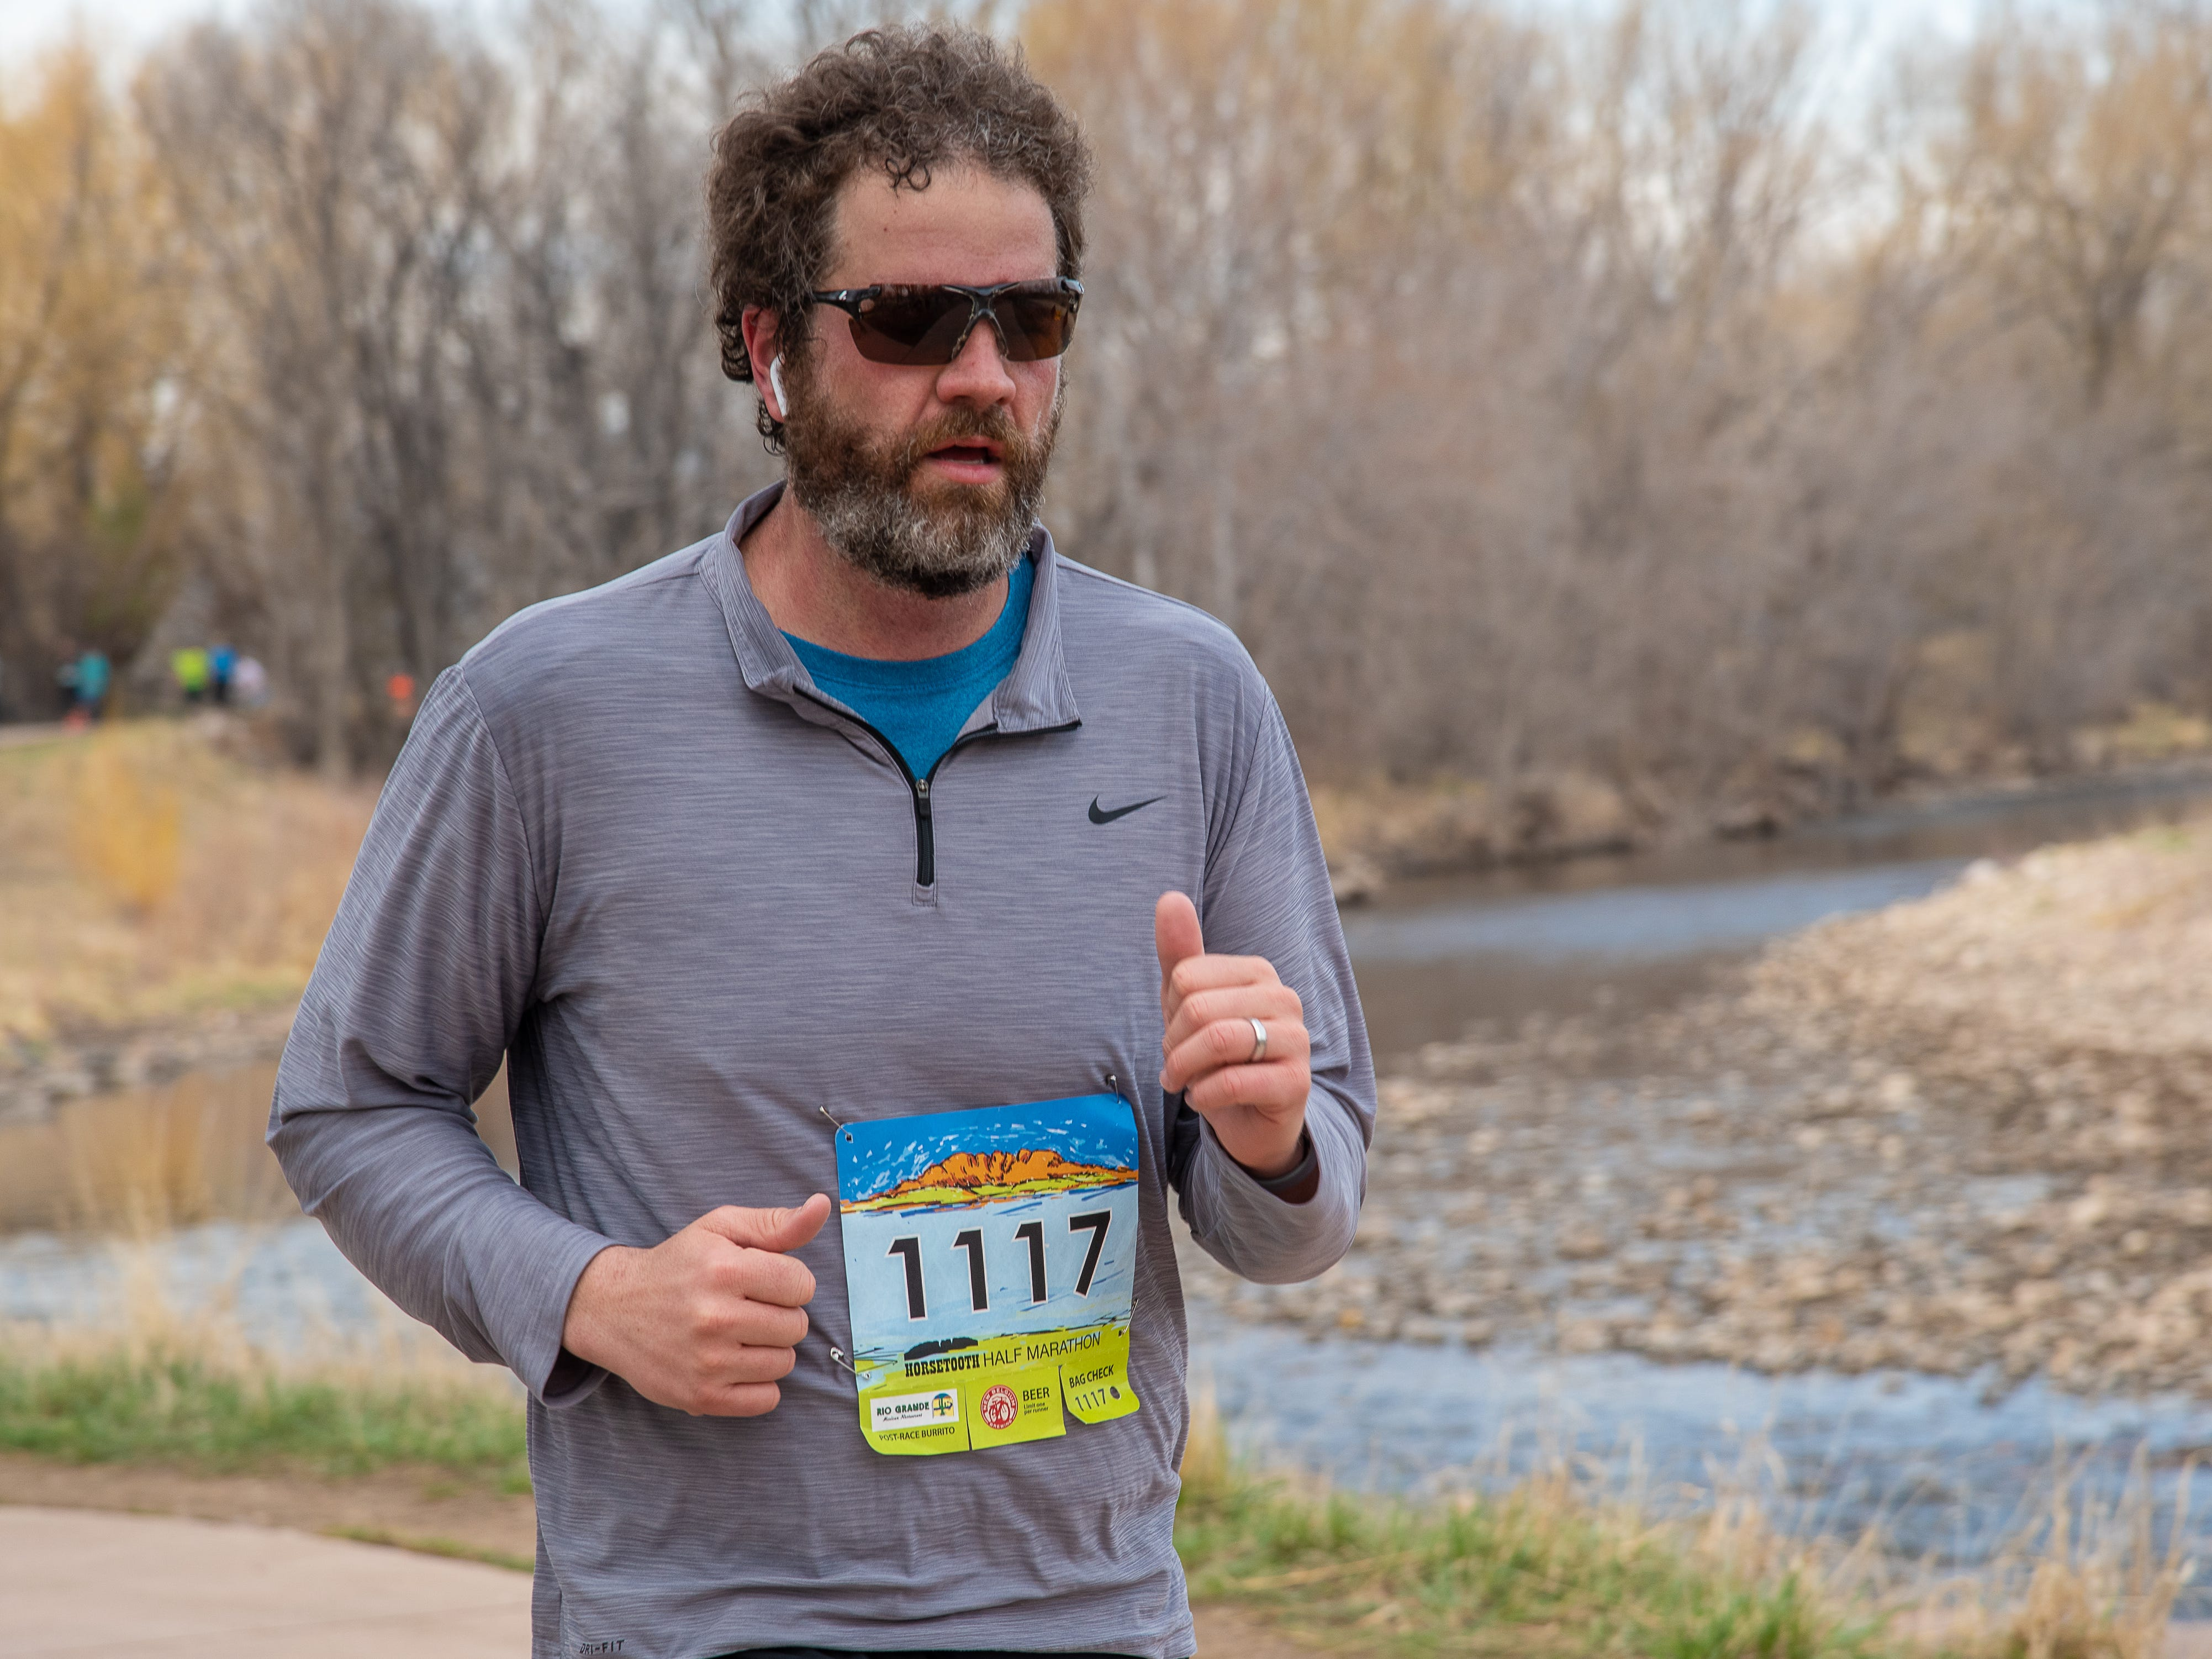 A participant runs on the Poudre Trail near Wood Street during the Horsetooth Half Marathon on Sunday, April 14, 2019, in Fort Collins, Colo.